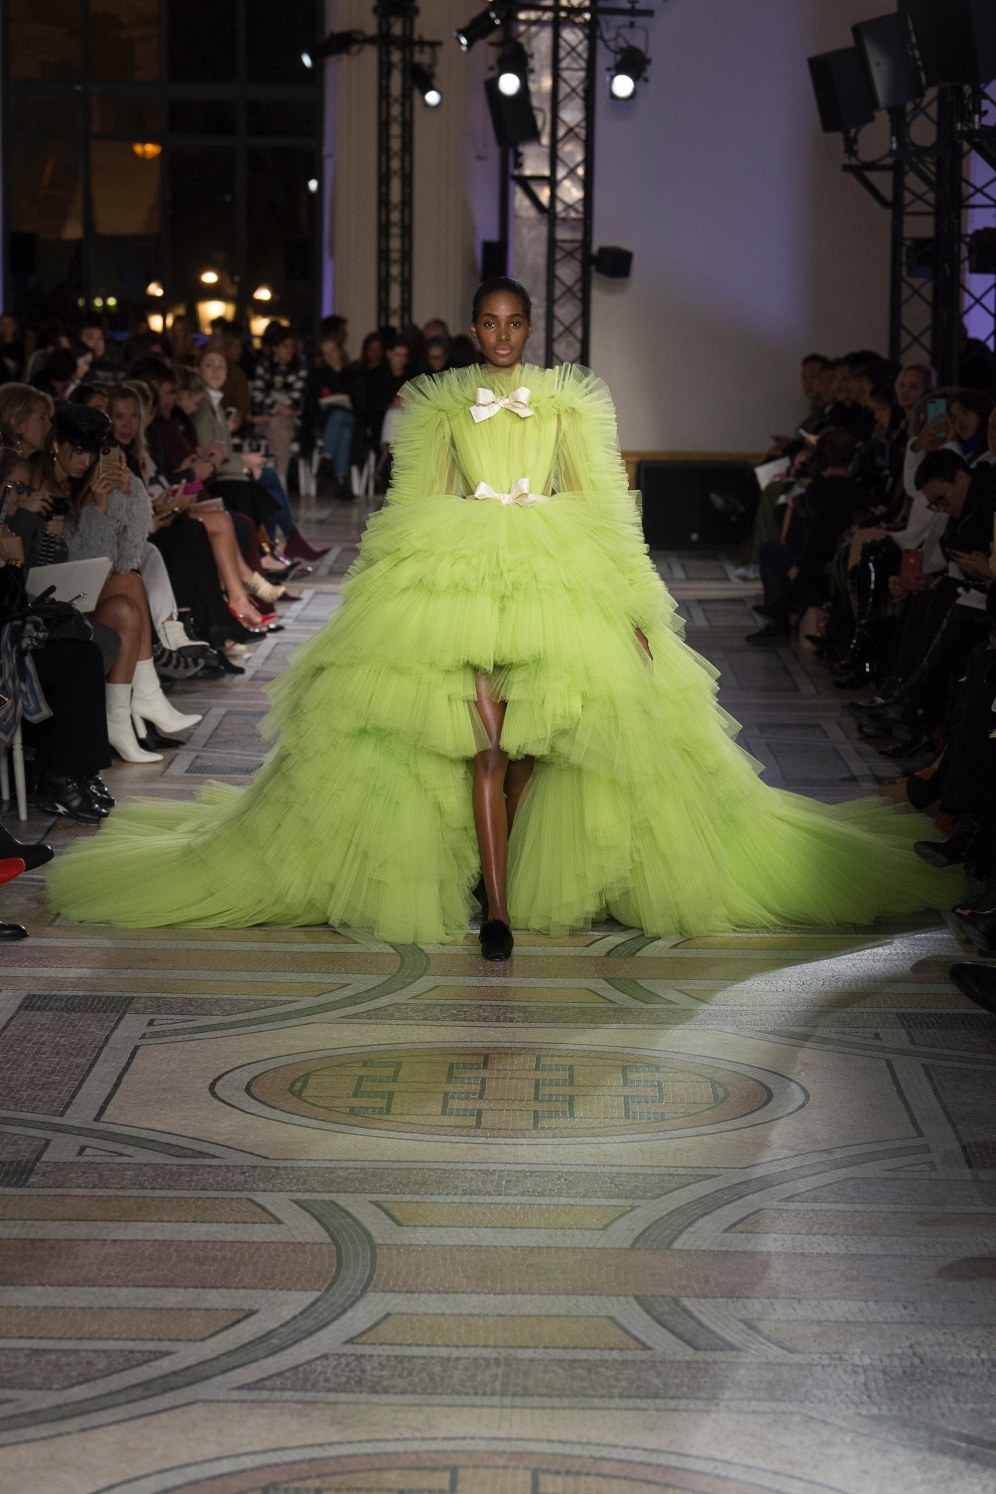 I was blown away by the sweeping organza ball gown worn by Tami Williams!